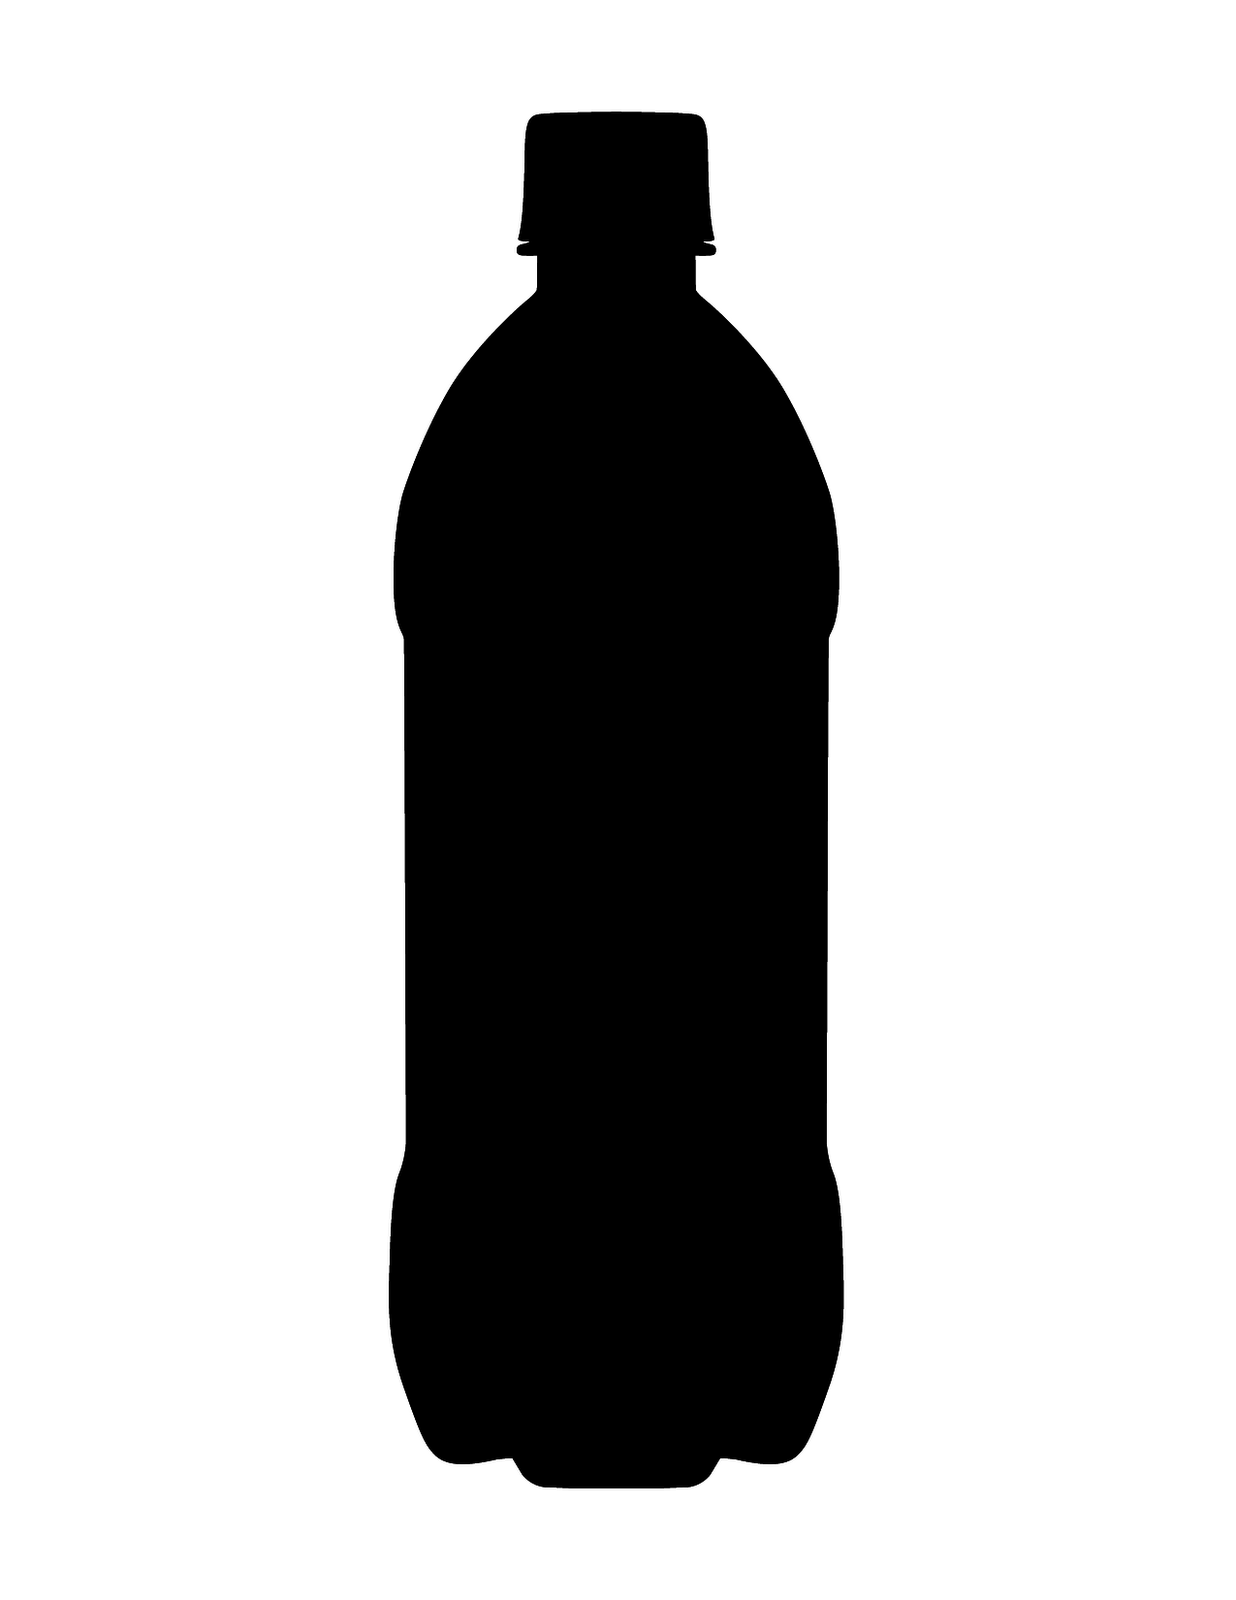 This is the silhouette of a typical soda bottle you get out of a ...